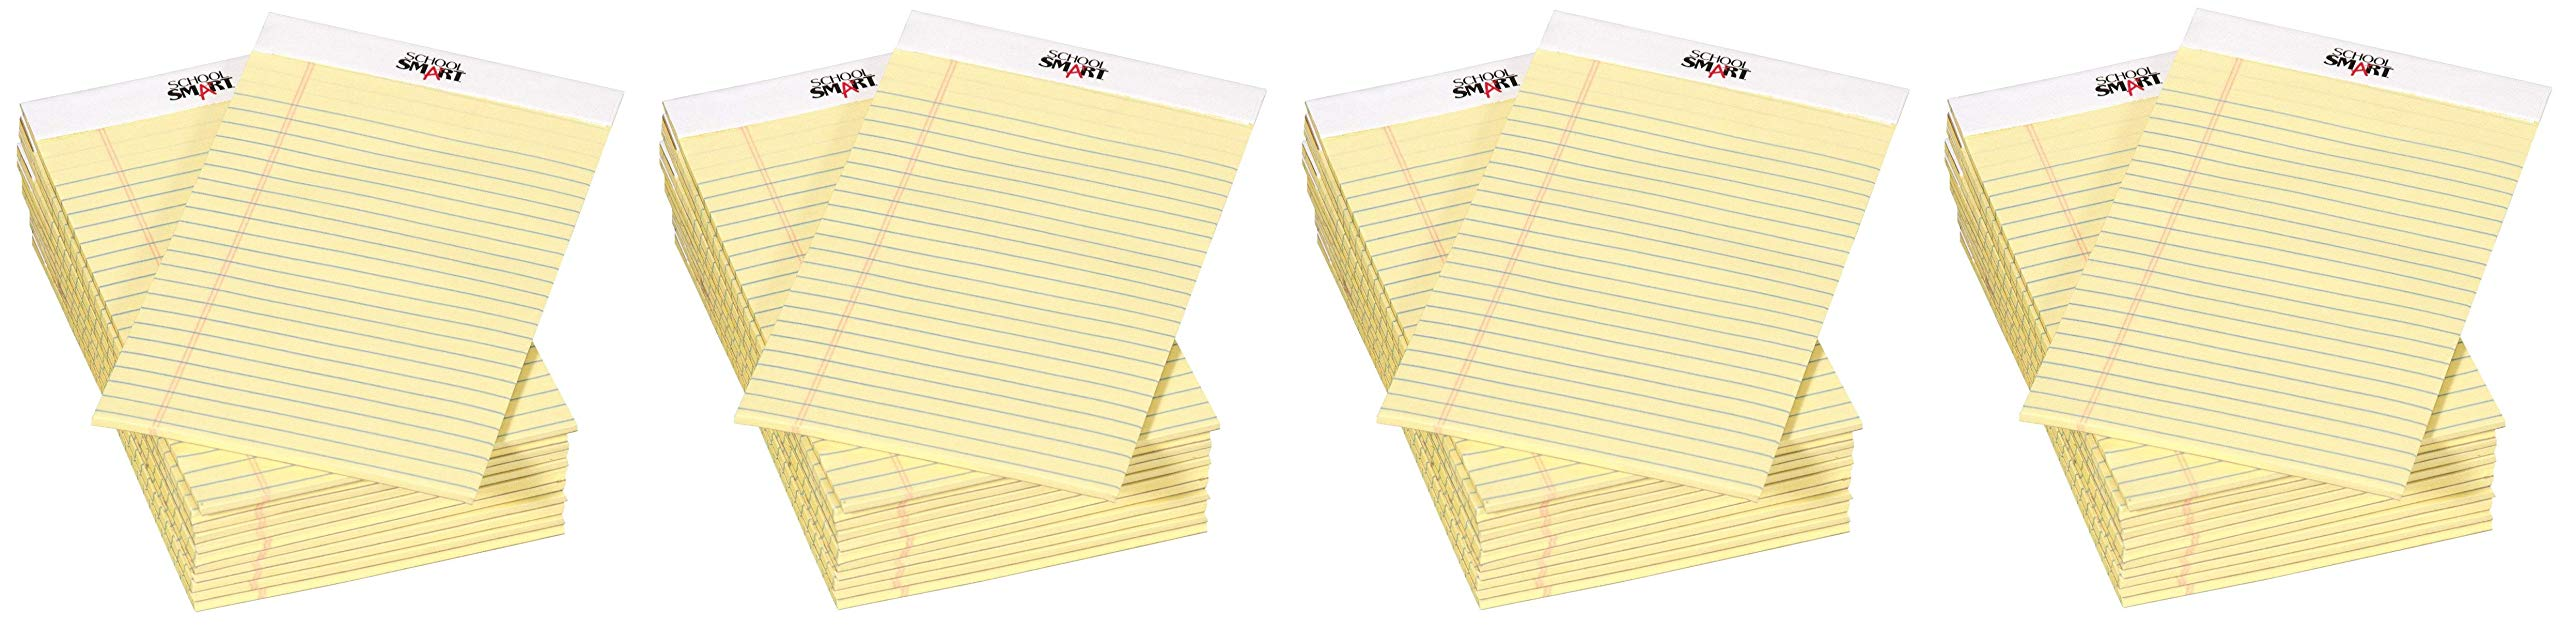 School Smart Junior Legal Pad, 5 x 8 Inches, 50 Sheets Each, Canary, Pack of 12 (Fоur Paсk) by School Smart